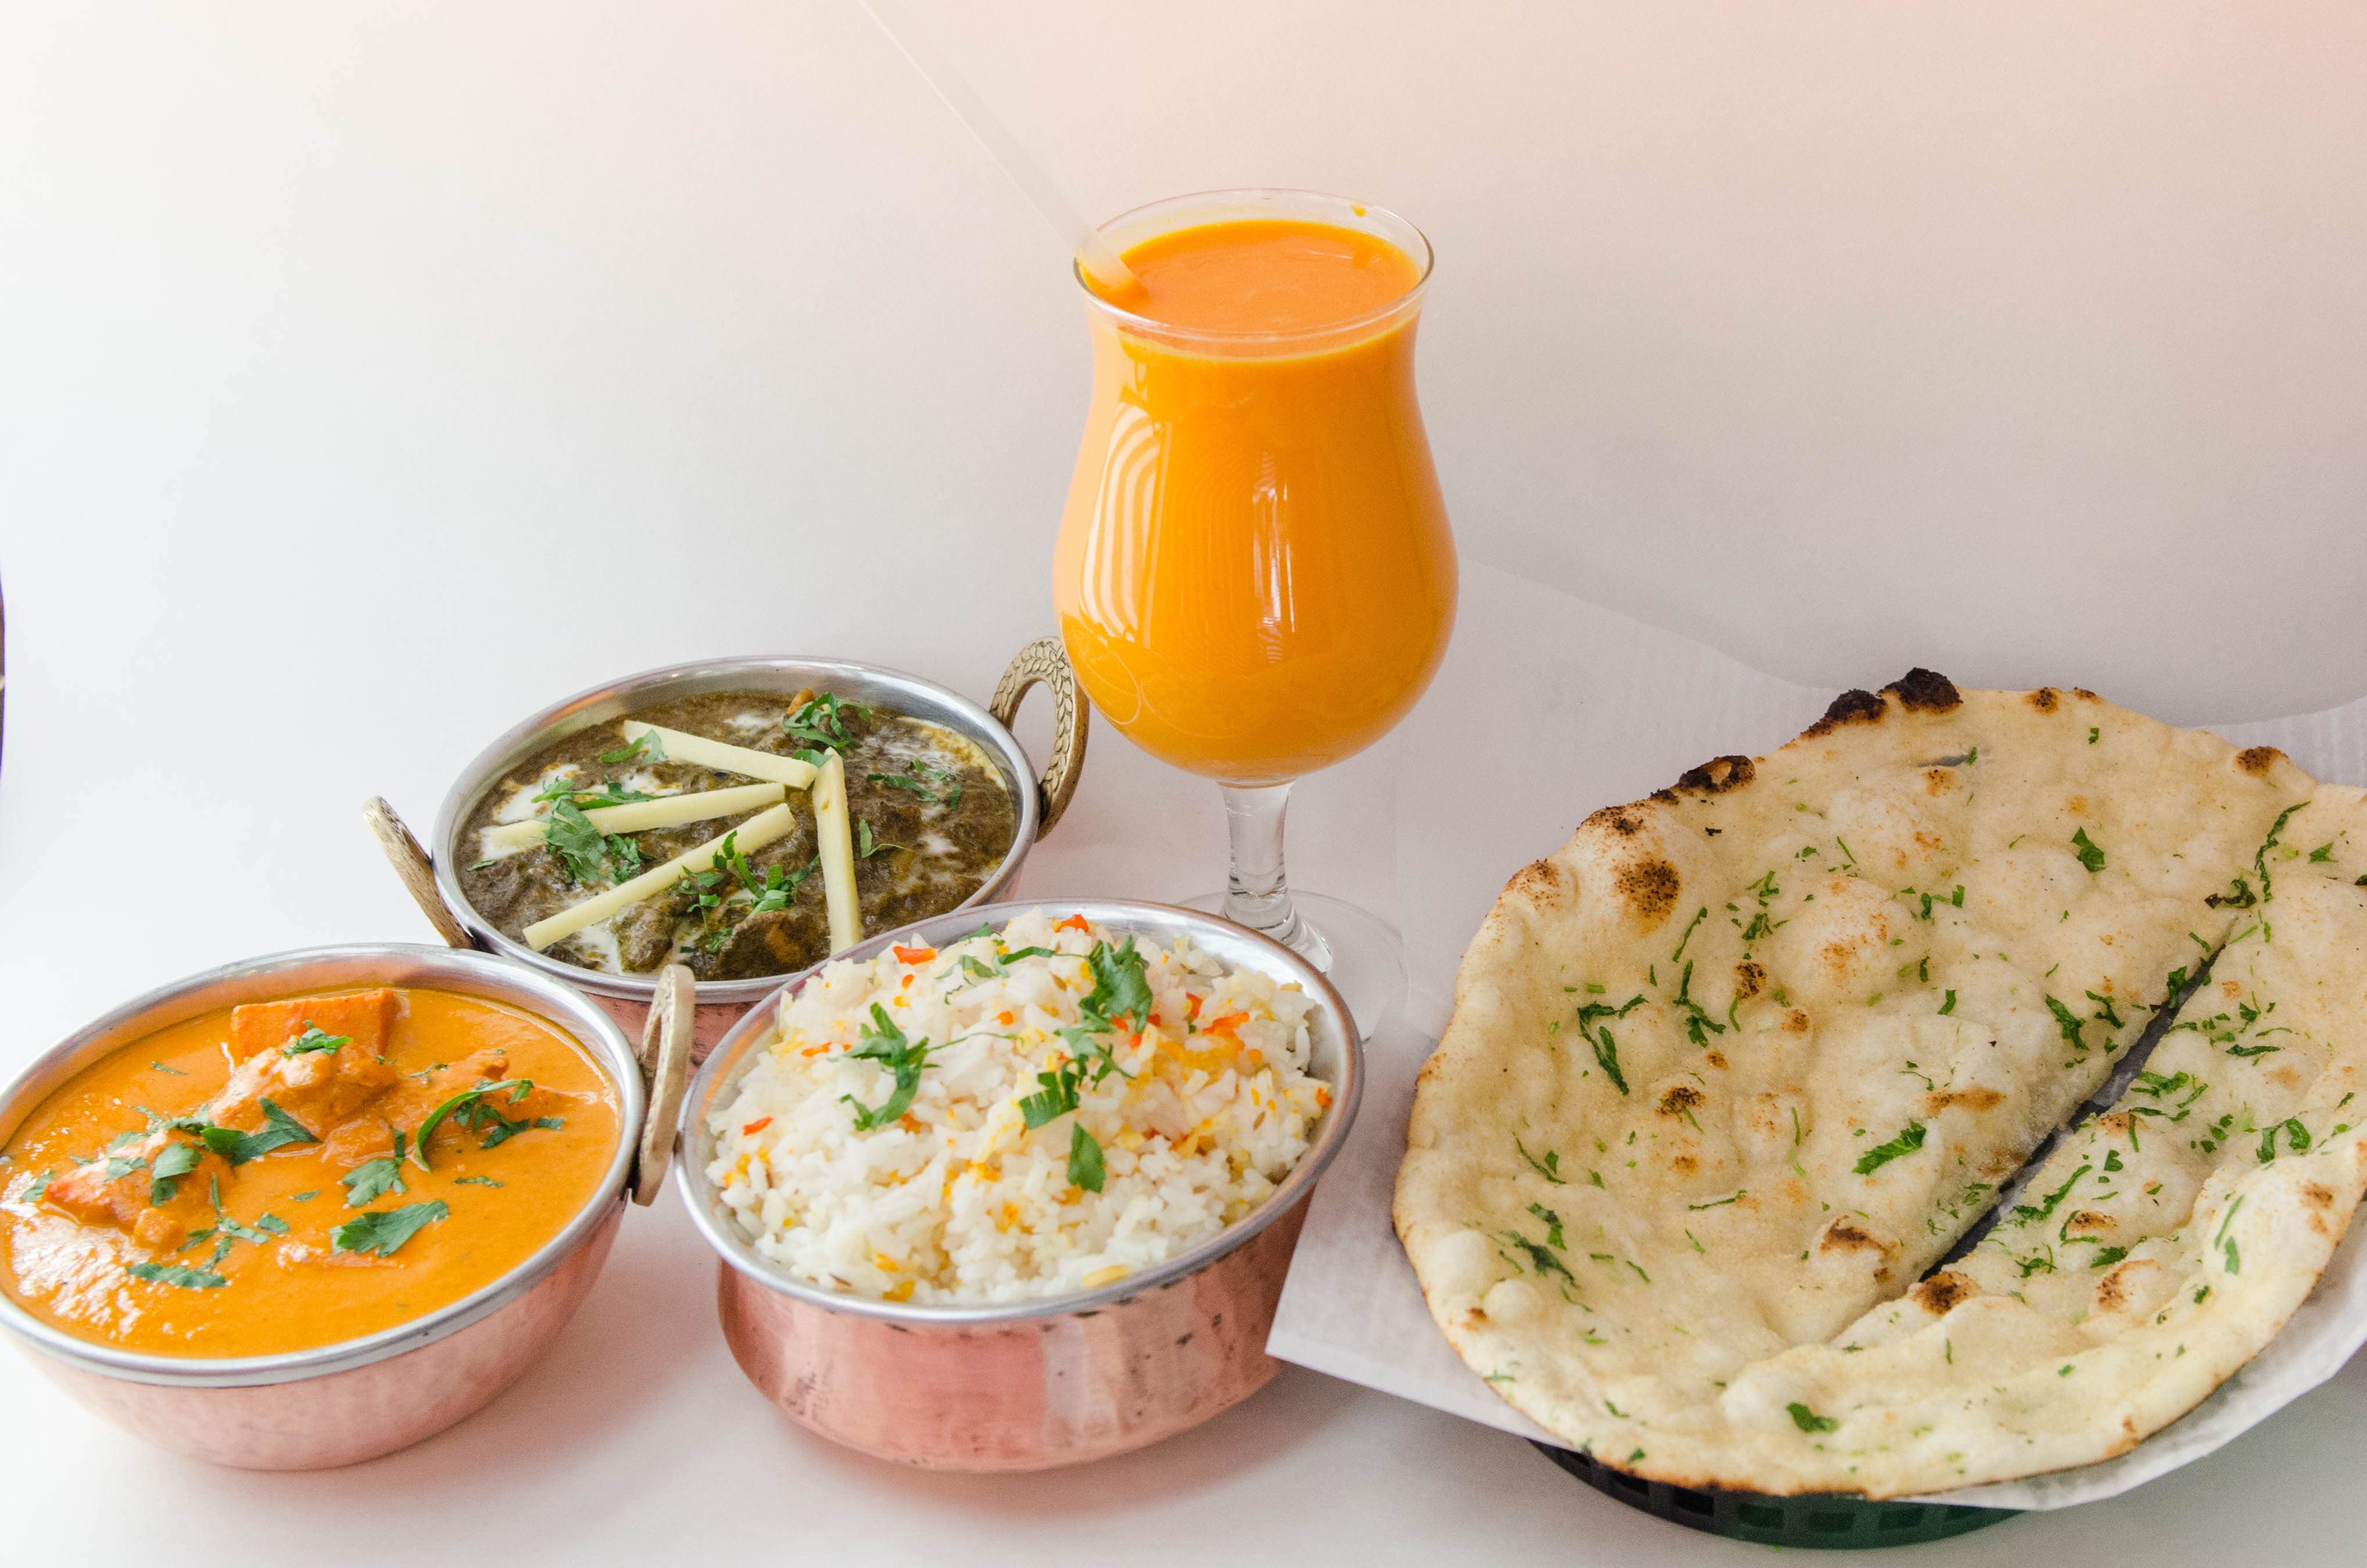 A spread of flavorful Indian cuisine | Courtesy of Kohinoor